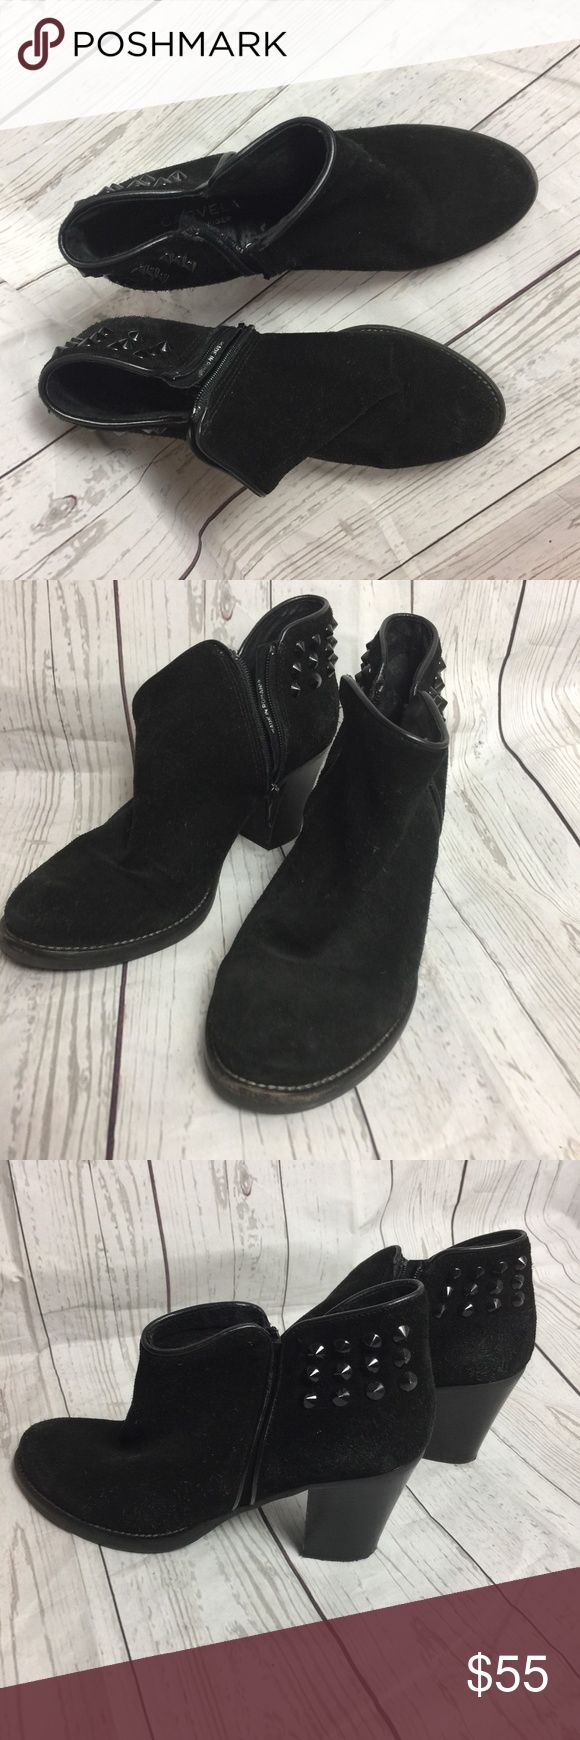 Carvela Kurt Size 37 Black Ankle Block Heel Boots Carvela By Kurt Geiger Size 37 Black Suede Studded Ankle Block Heel Boots   Style: Ankle Boots	 US Shoe Size (Women's): 37 Colour:Black	 Heel Type:Block Heel Height:Flat (0 to 1/2 in.)	 Color: Black Material:Suede	 Fastening: Zip Carvela Shoes Ankle Boots & Booties